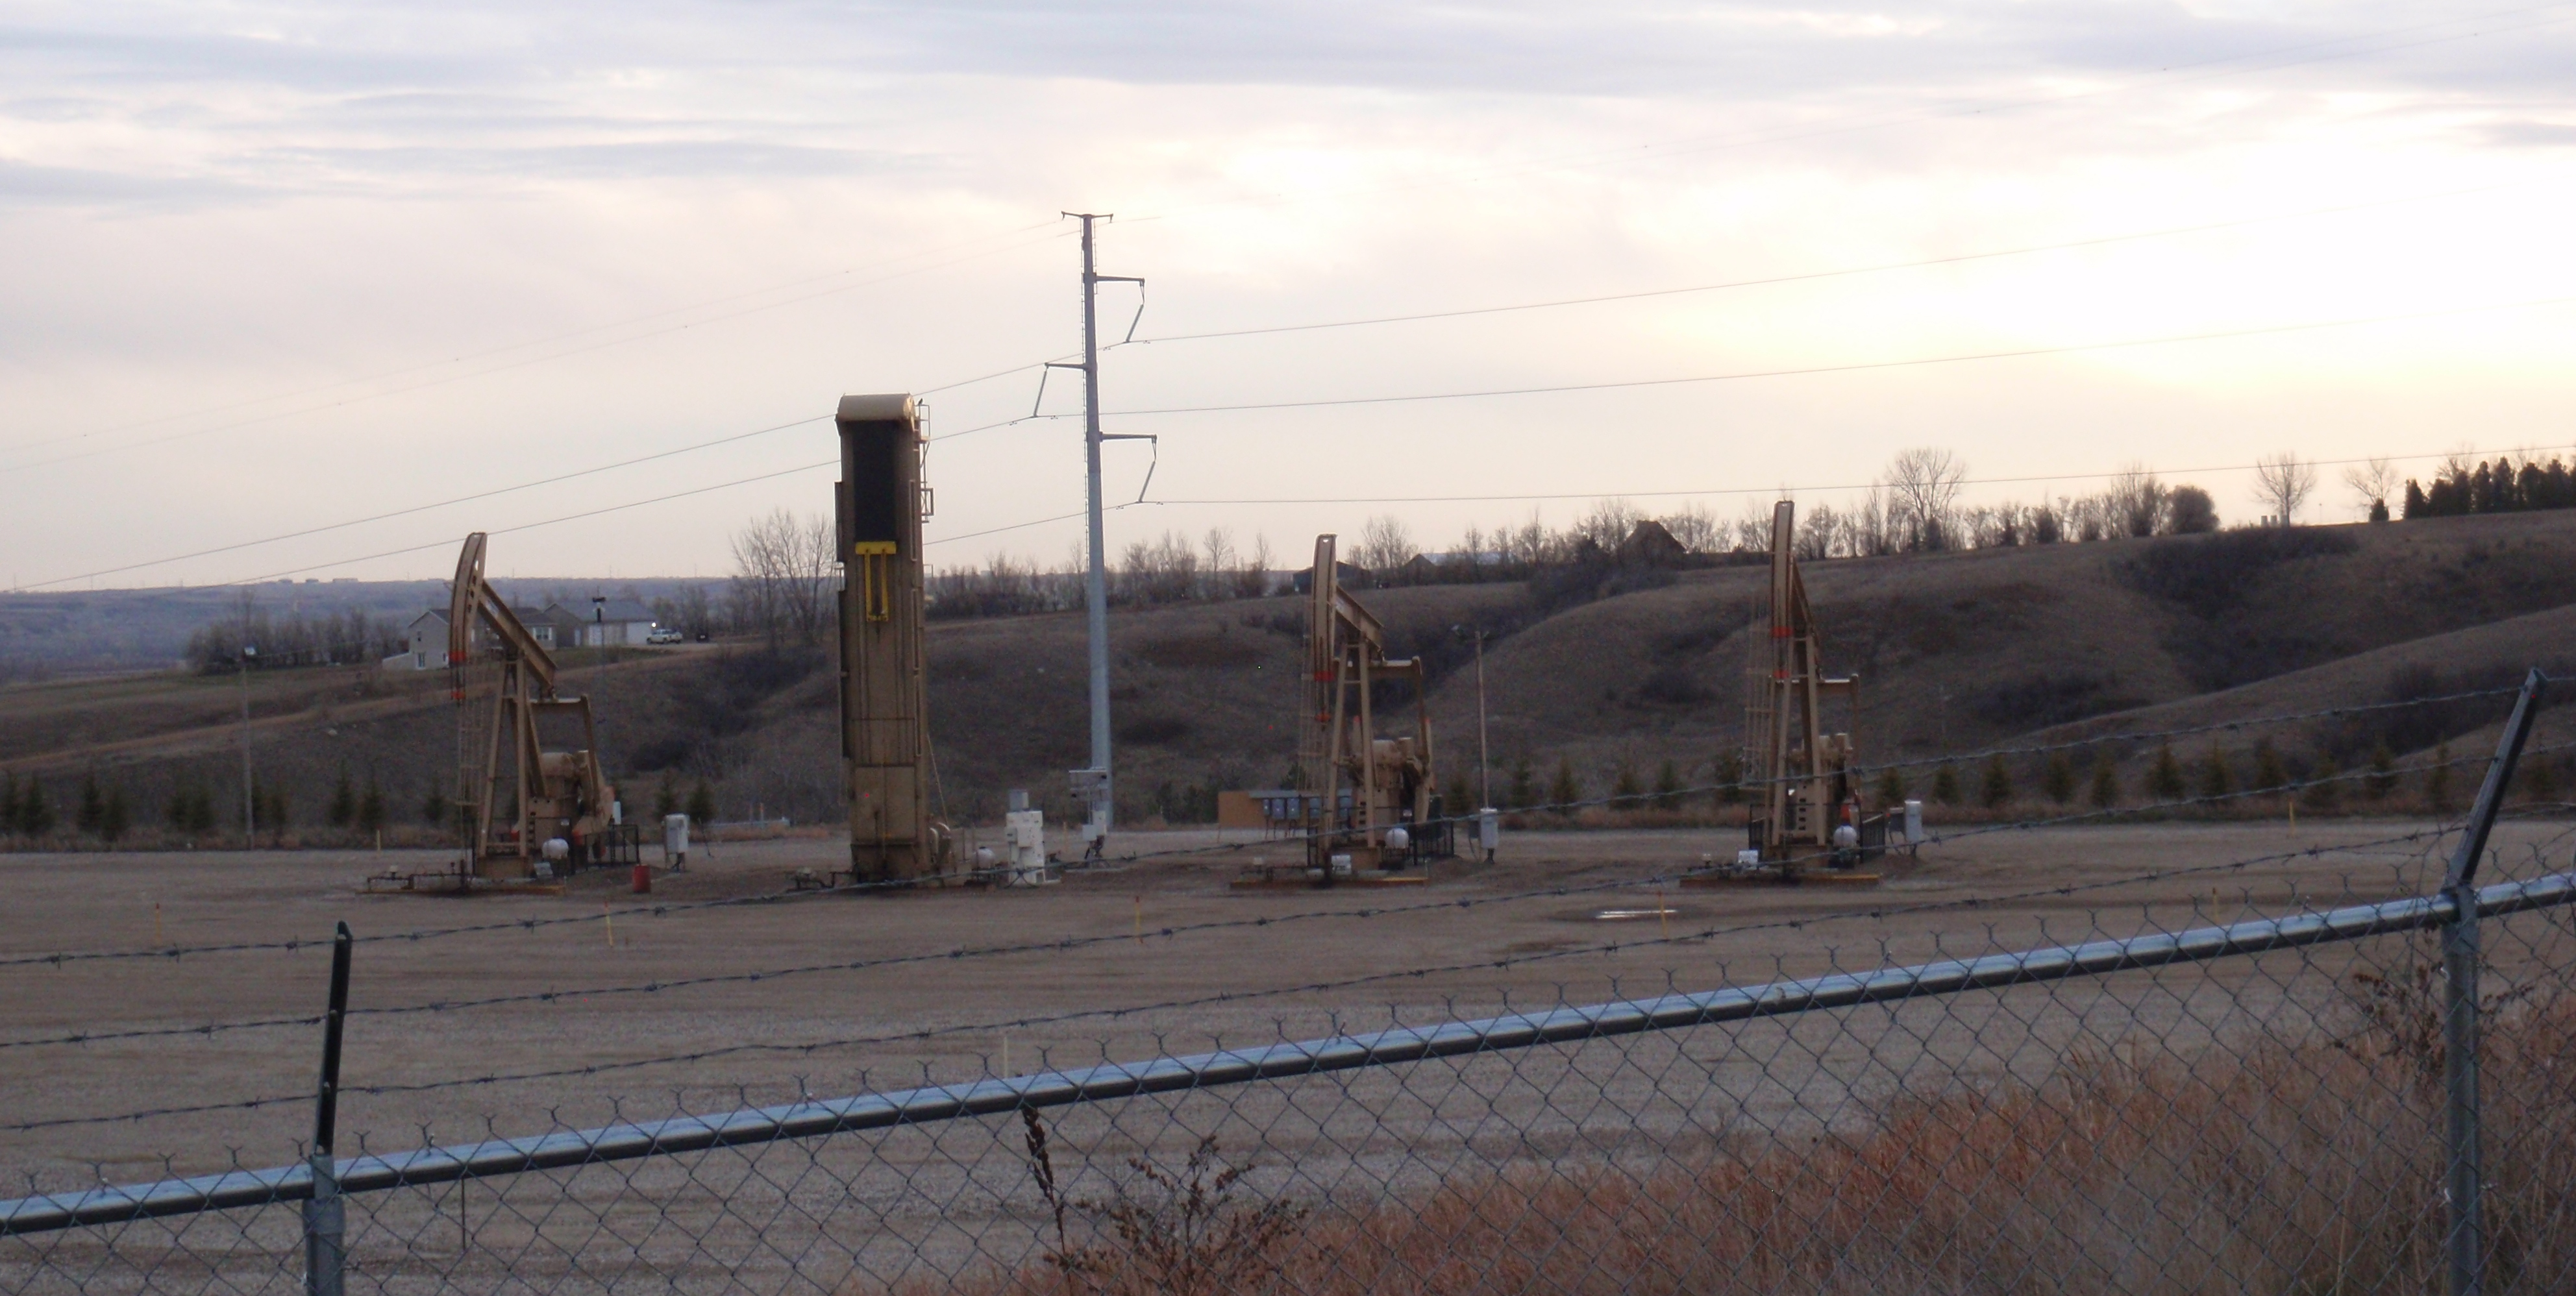 4 wells on west side of pad. Notice one pump isn't typical donkey style. Photo by James Ulvog.